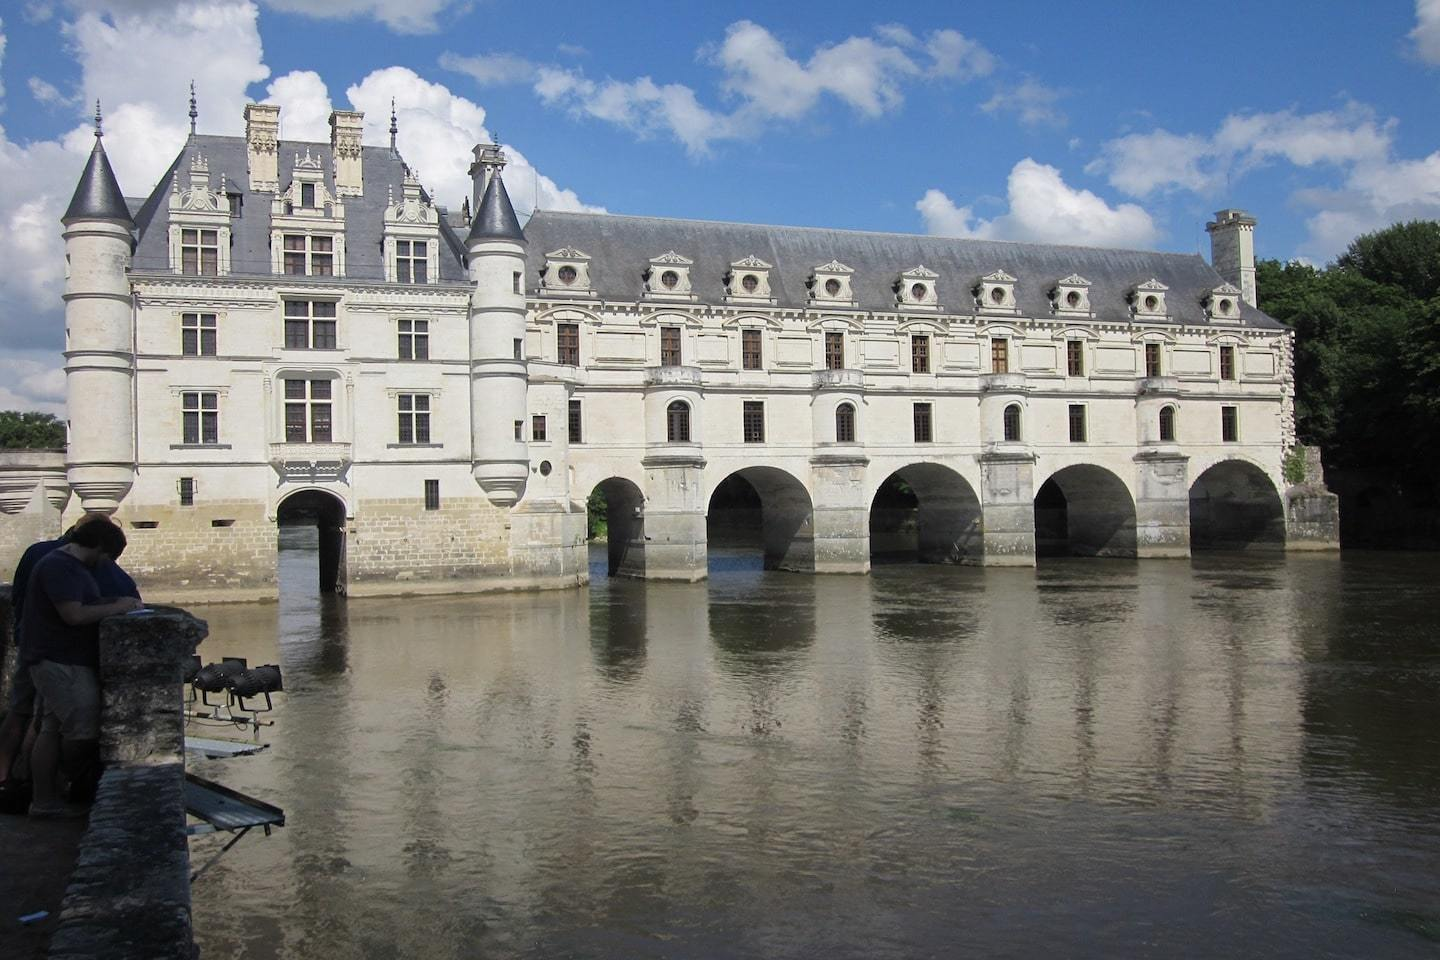 castle with arches on the water